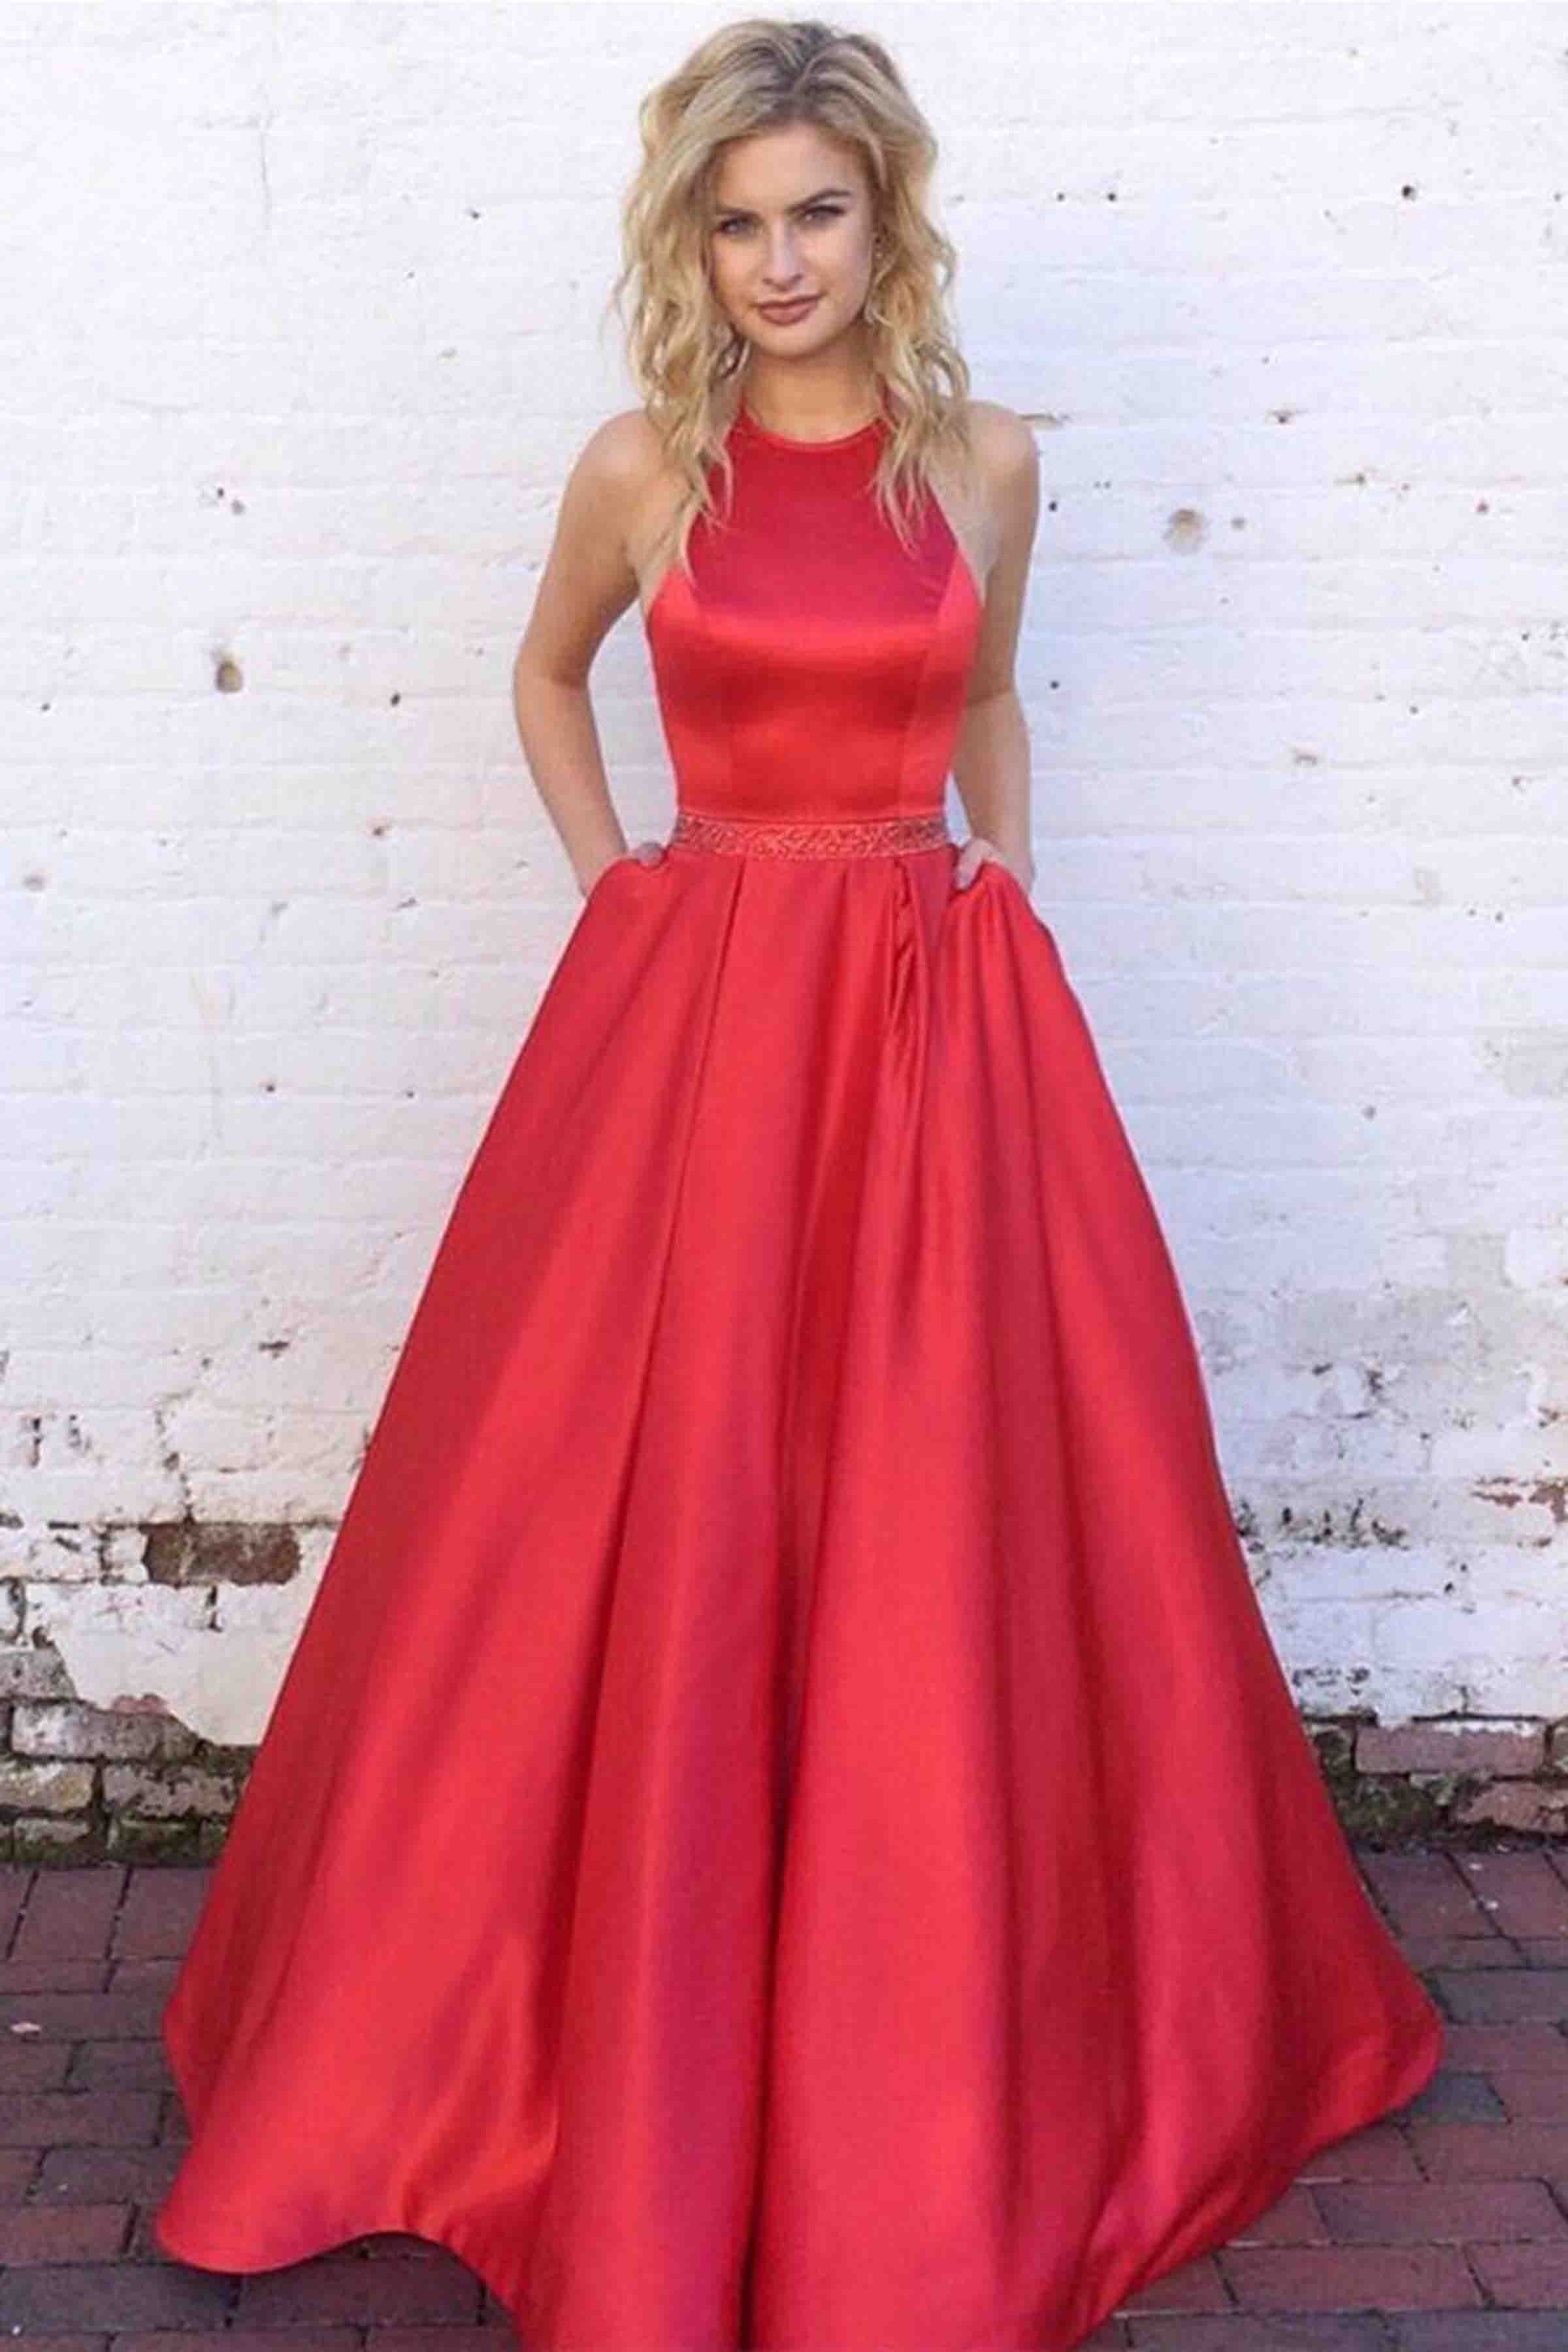 Red satin round neck Aline long prom dresssimple dress from